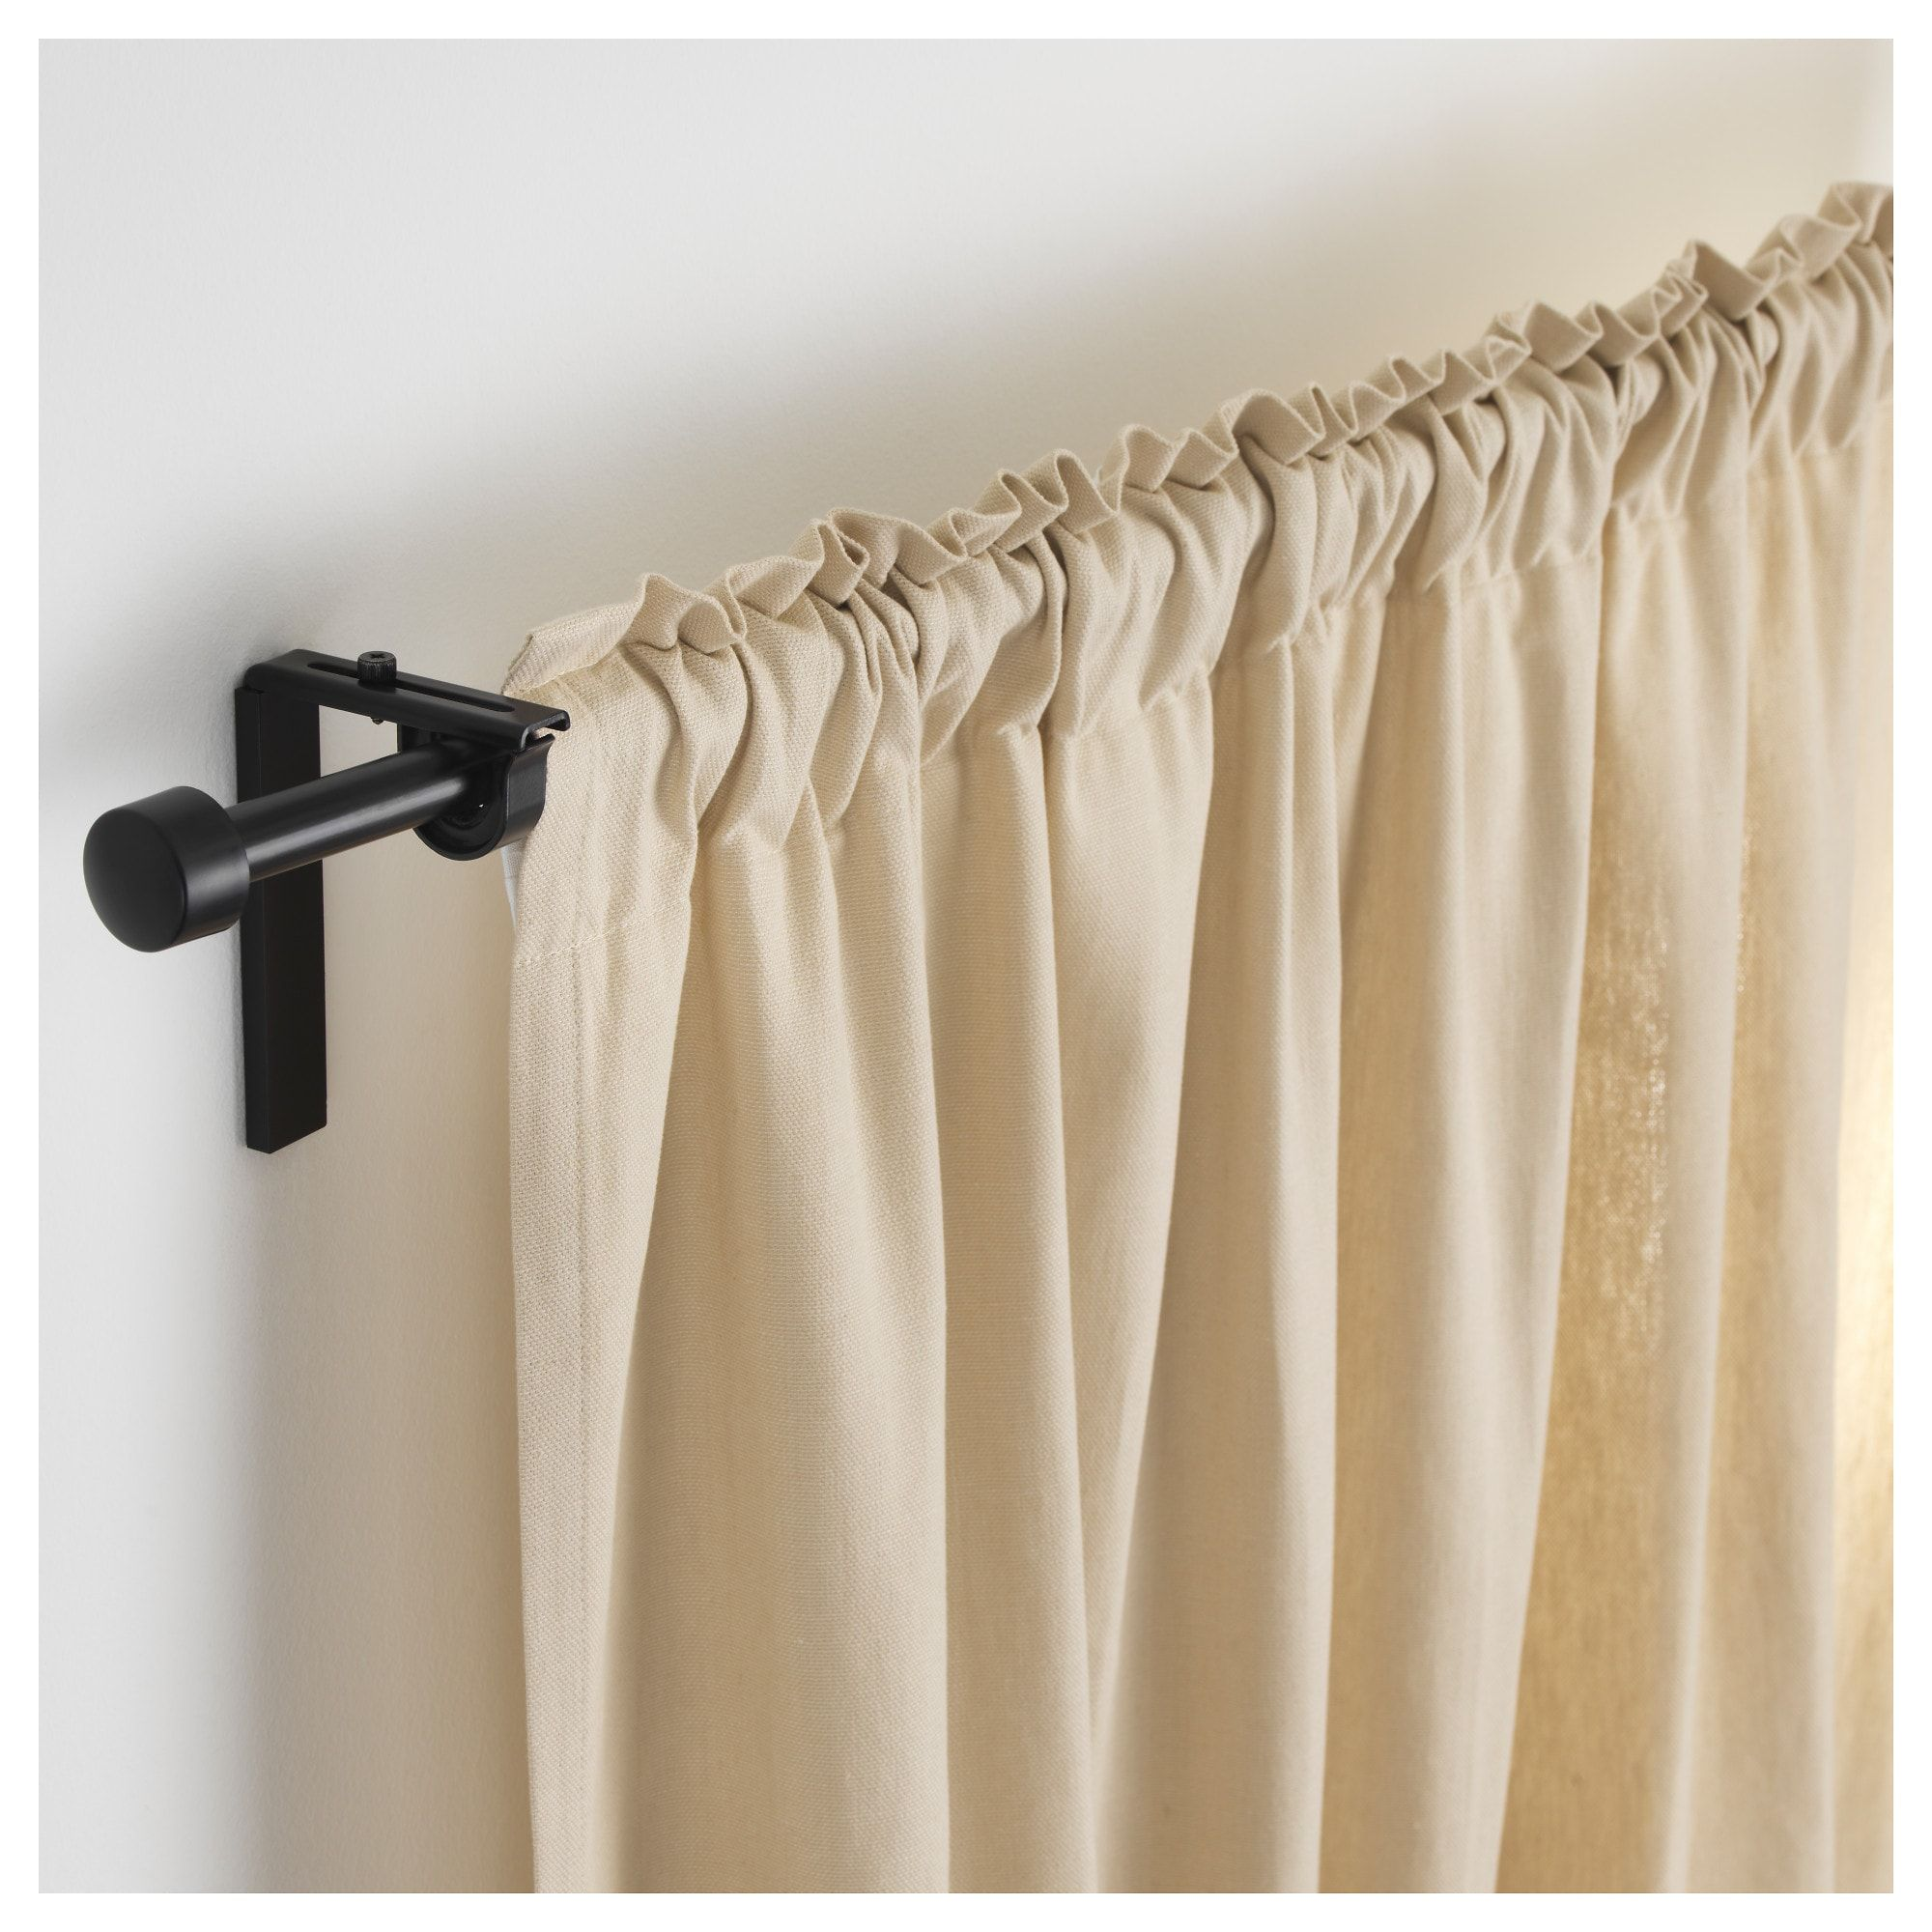 Ikea Racka Black Curtain Rod Combination In 2019 Black Curtain